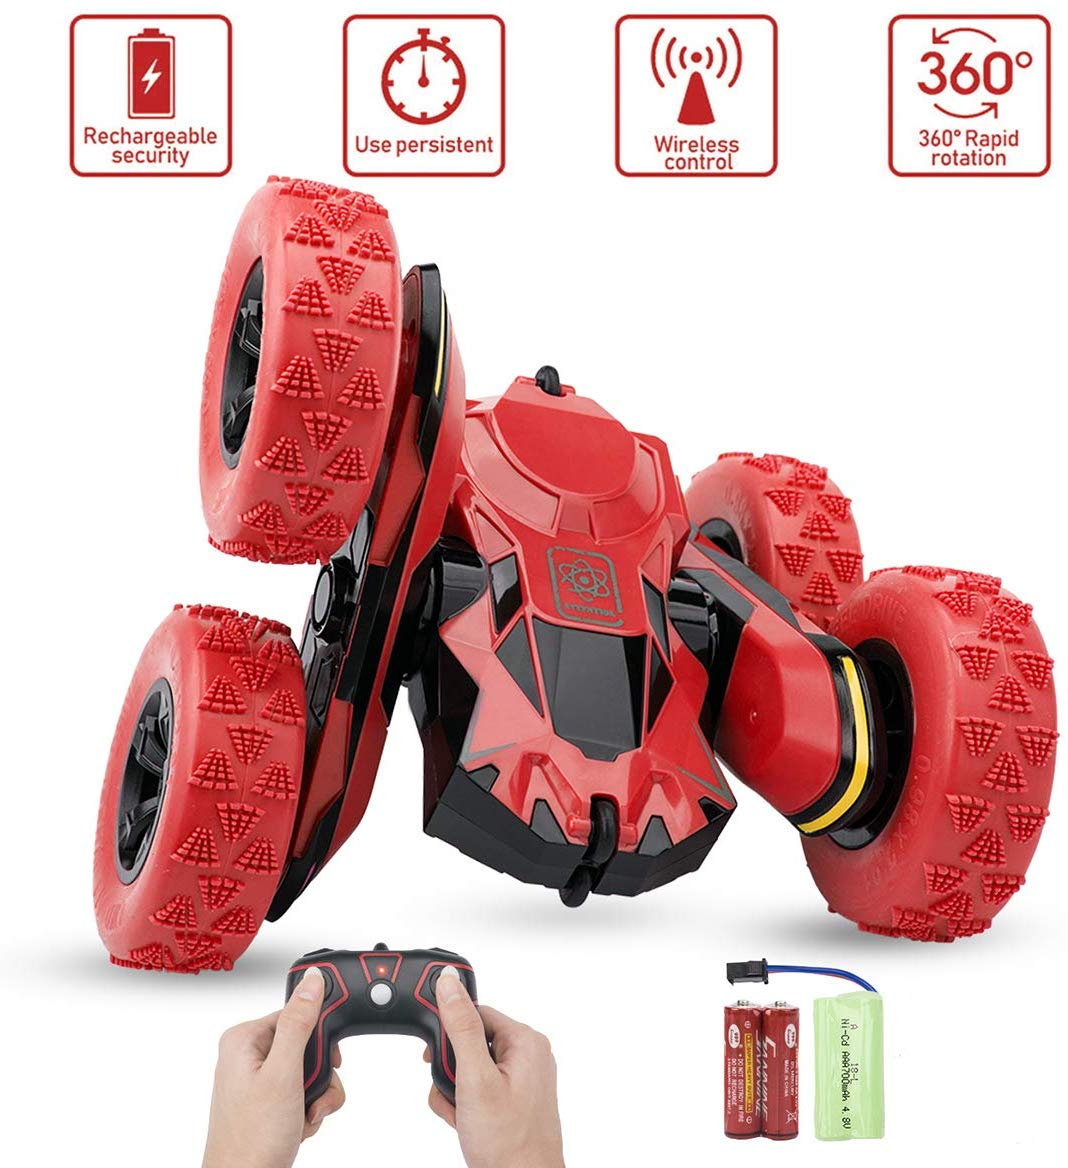 Remote Control Stunt Car Rc 4WD Off Road Rechargeable 2.4Ghz 3D Deformation Racing Car Double Sided Rotating Tumbling 360° Flips Off Road High Speed 7.5Mph Truck red